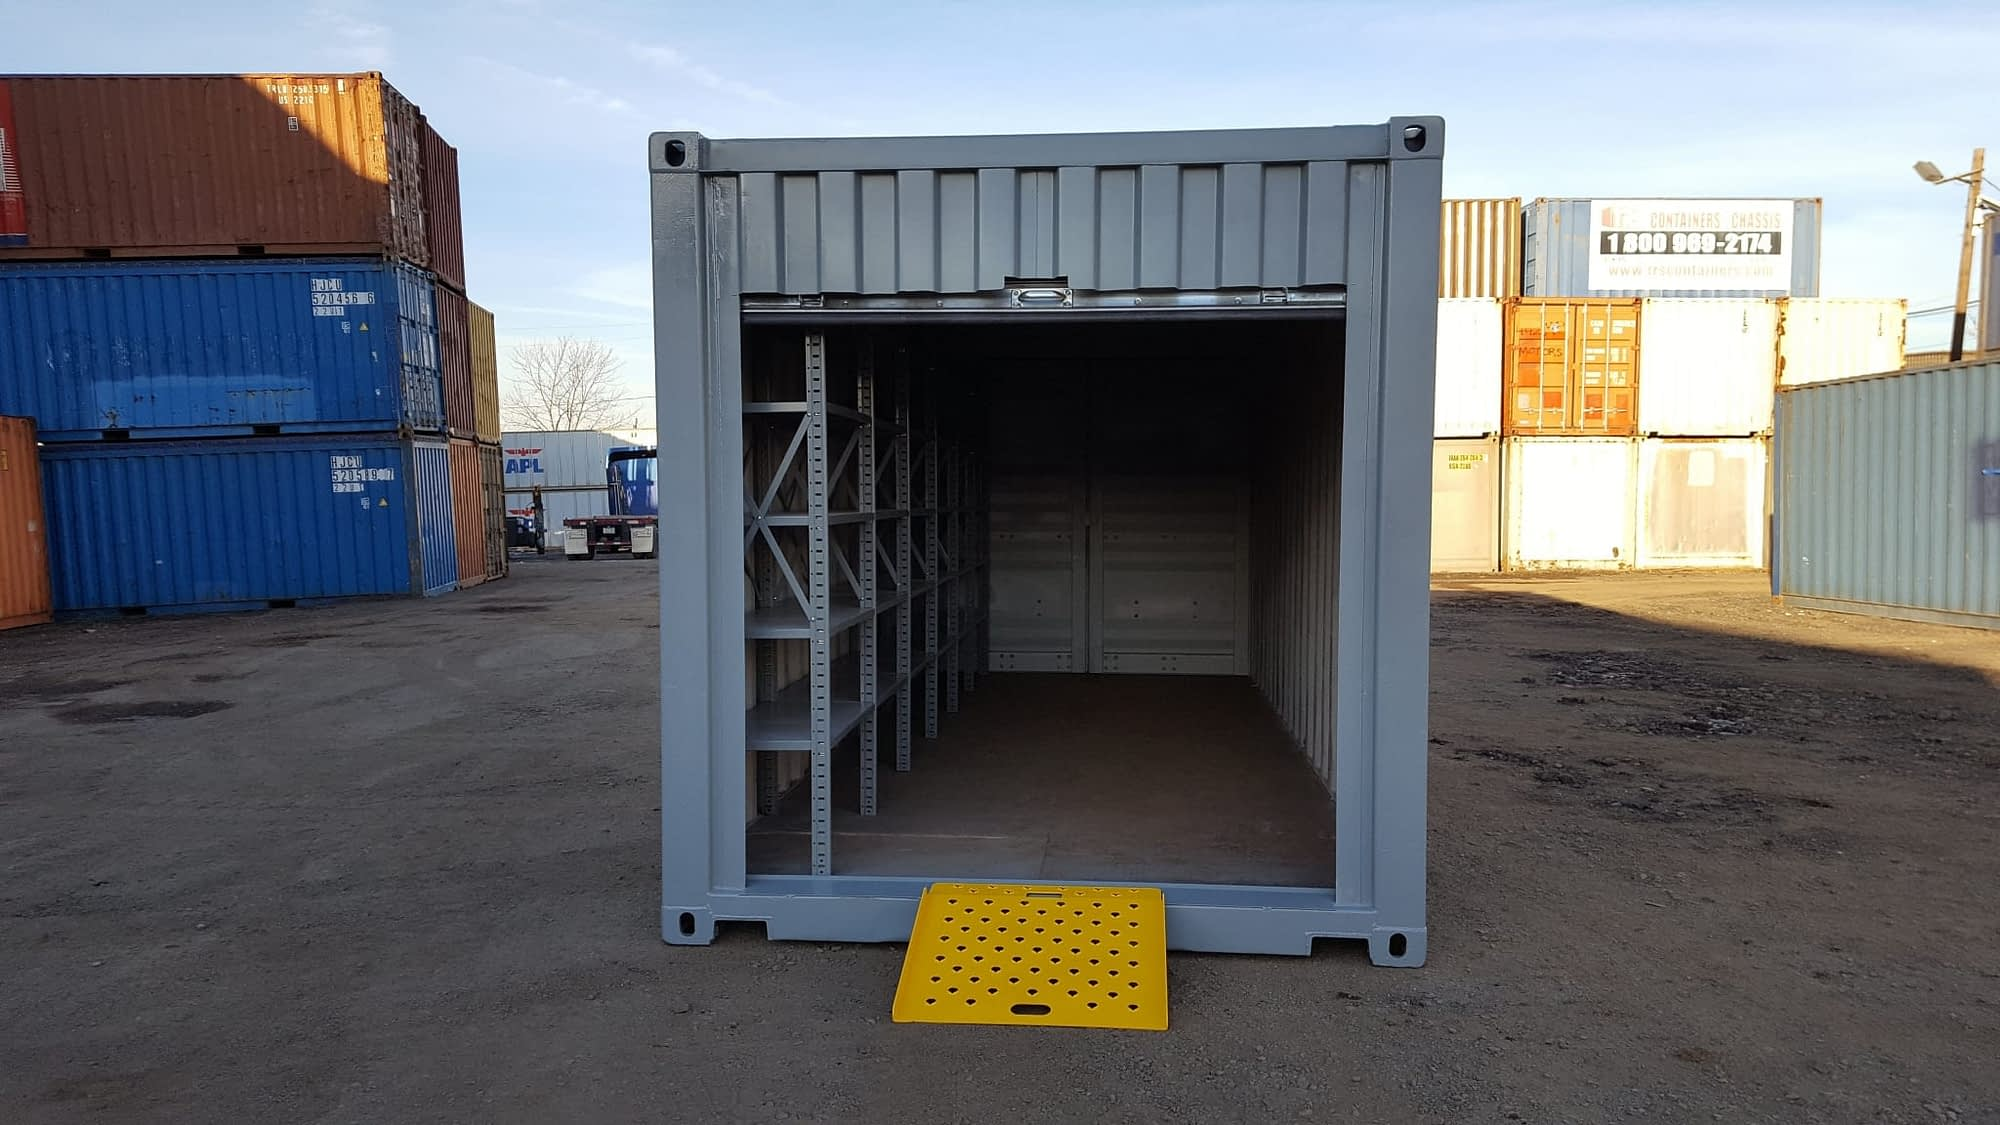 TRS Containers modifies standard steel ISO shipping containers into portable modular equipment solutions